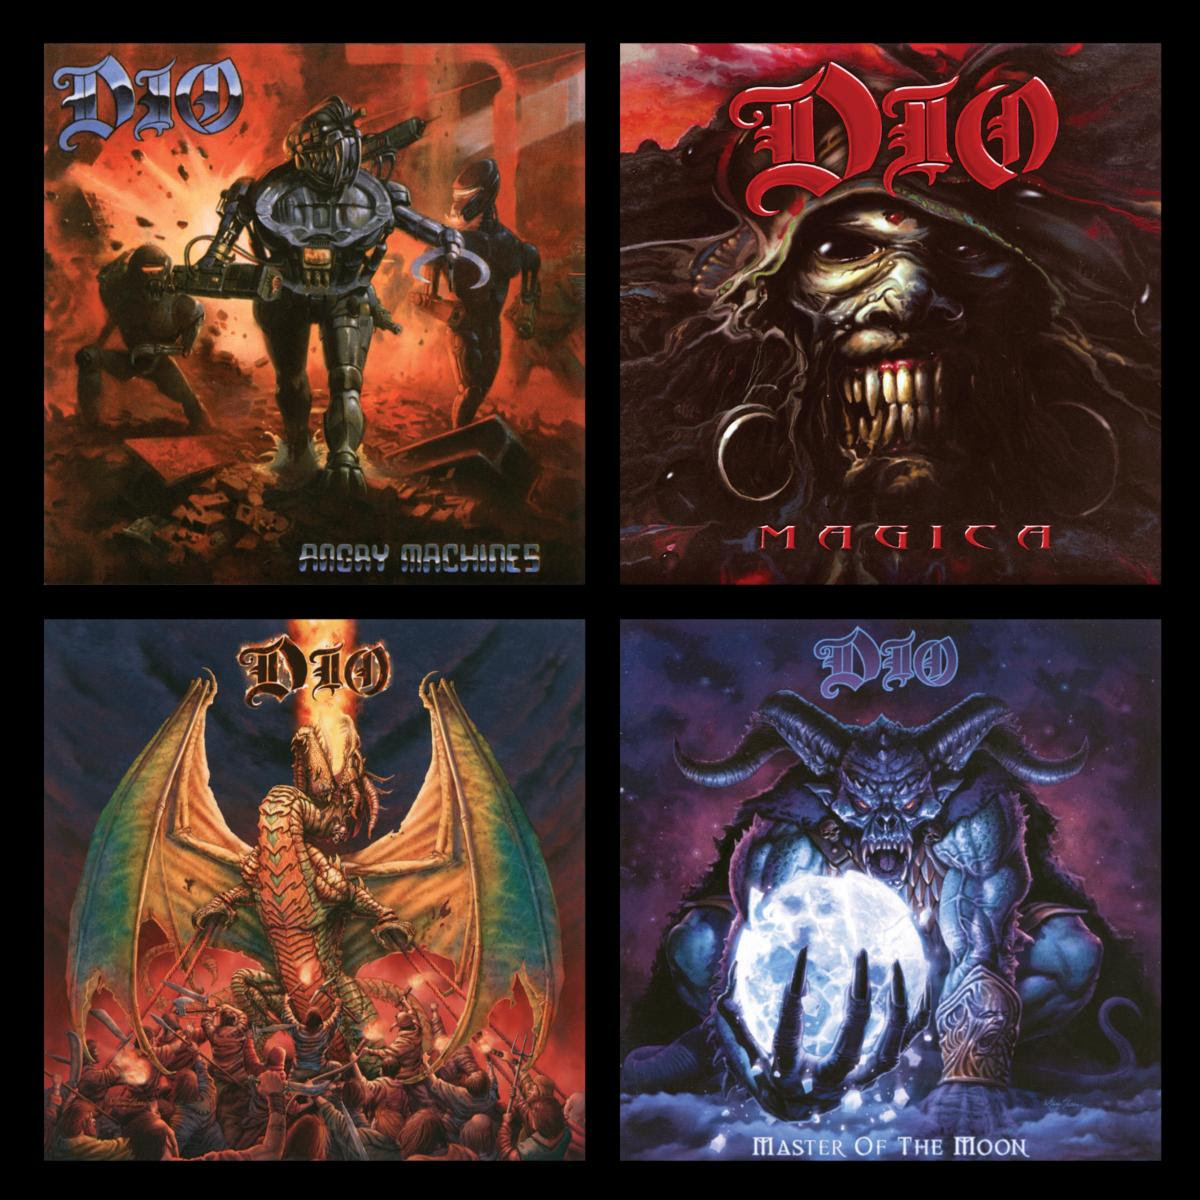 BMG Reveals New Streaming Tracks From Upcoming DIO Reissues